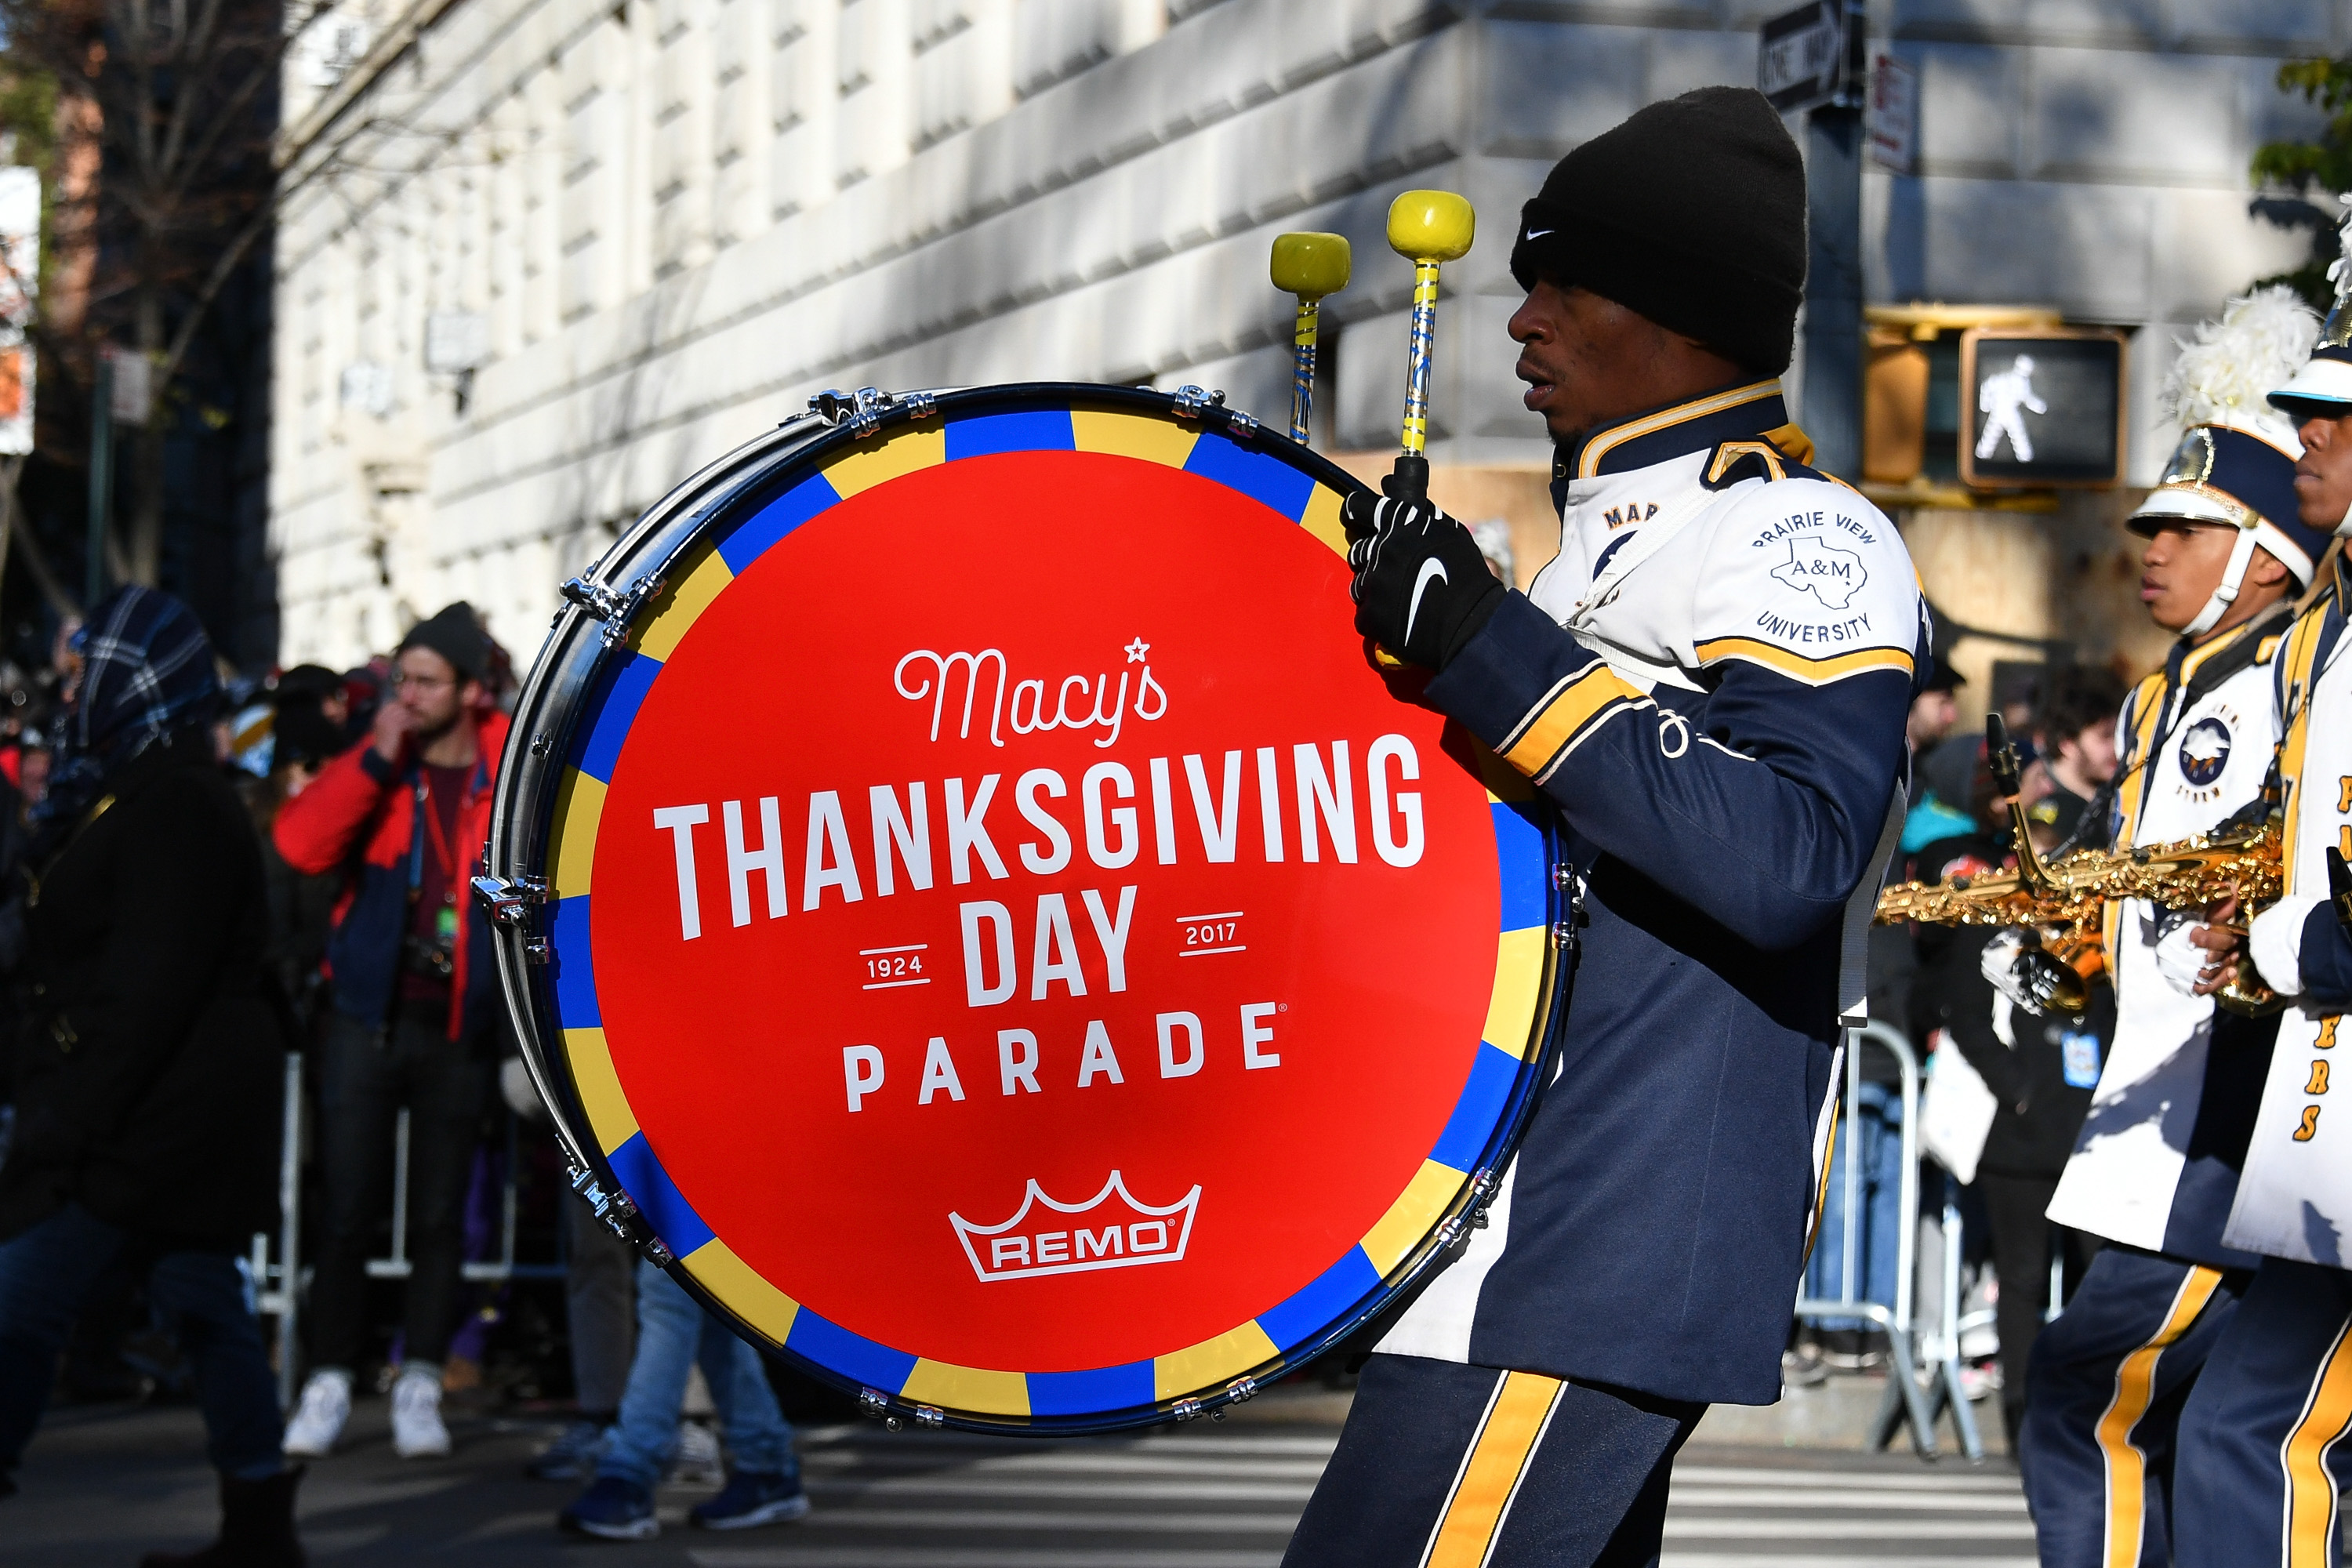 91st Annual Macy's Thanksgiving Day Parade